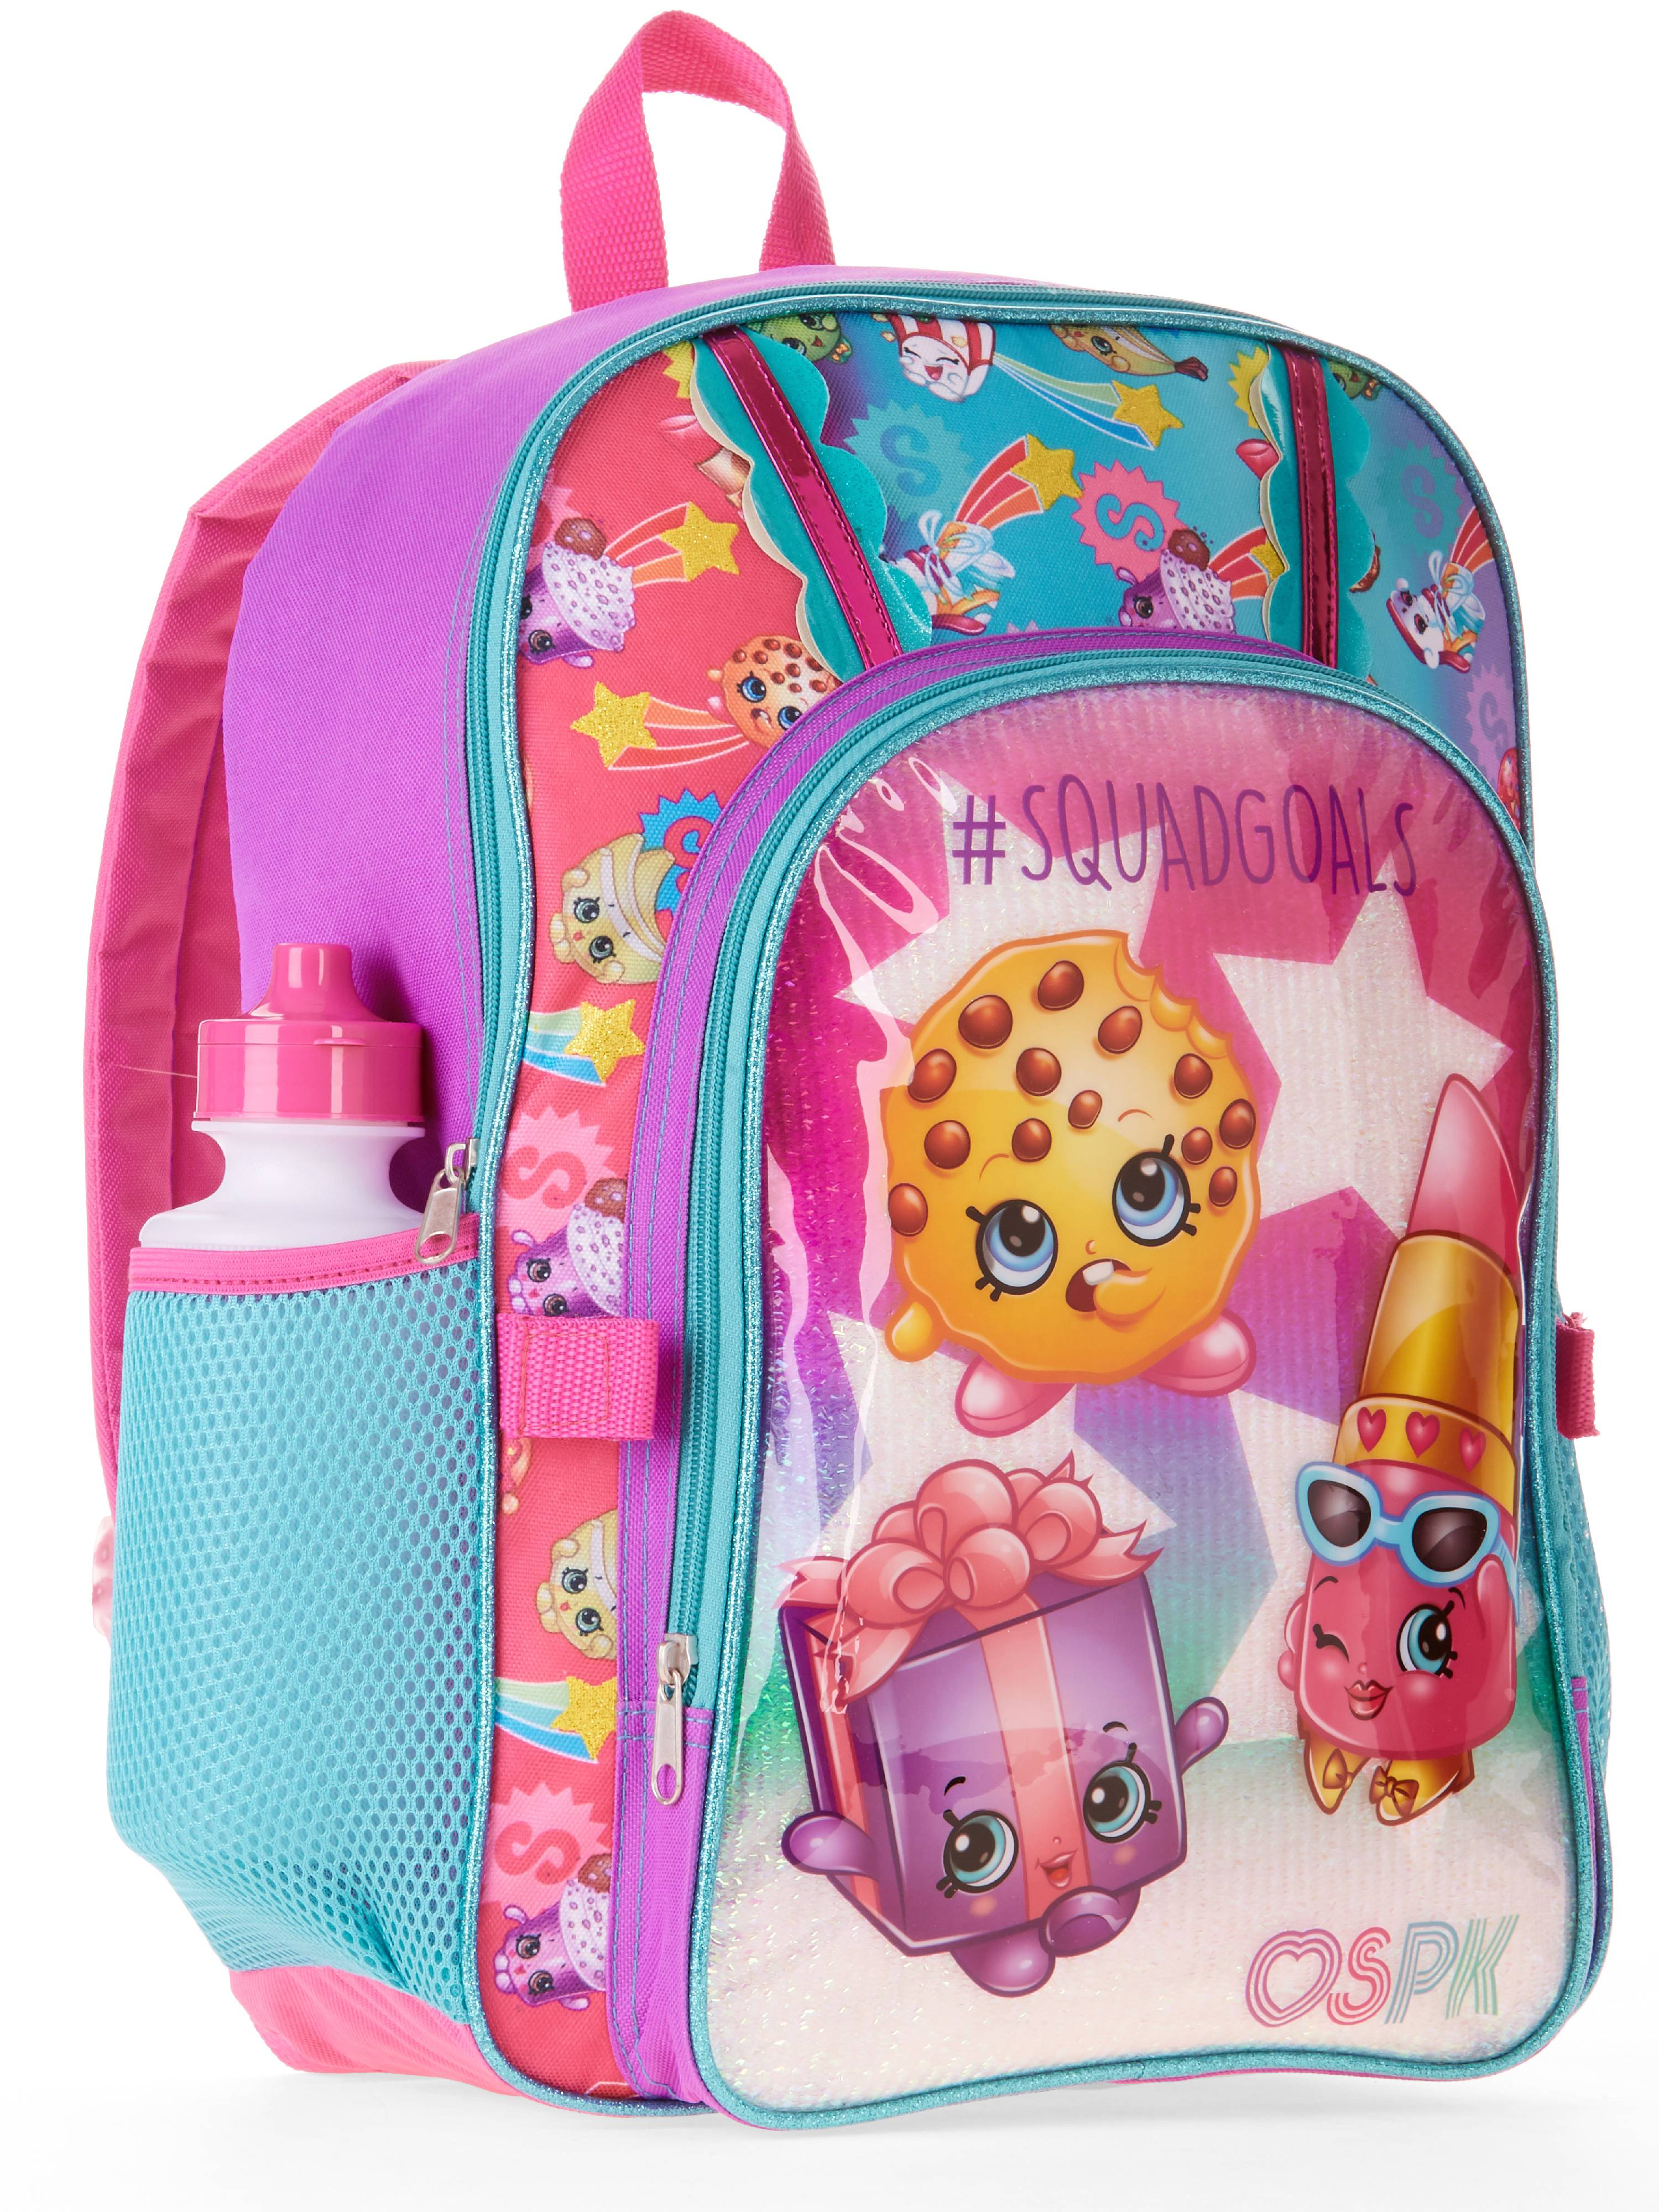 """Shopkins 12/"""" Kids Backpack with Two Compartments"""